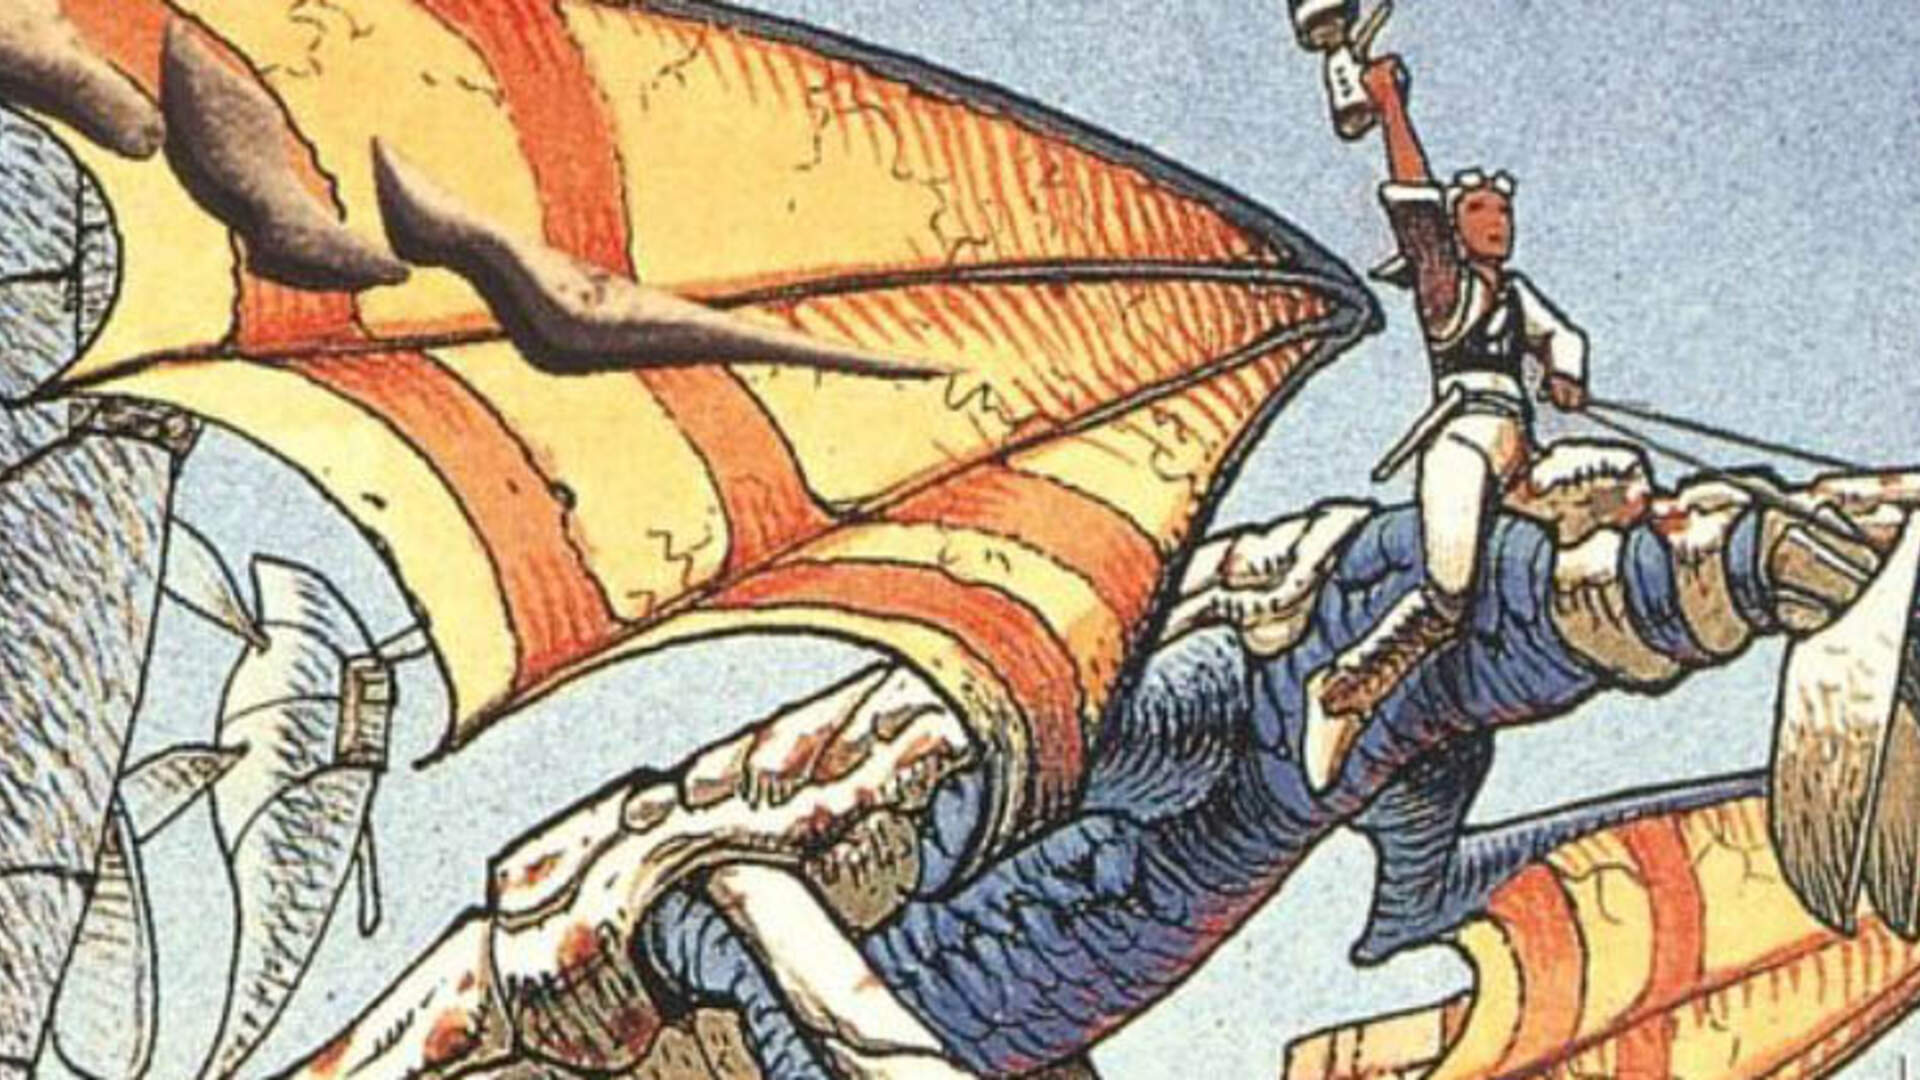 Panzer Dragoon and Panzer Dragoon 2: Zwei Remakes Announced